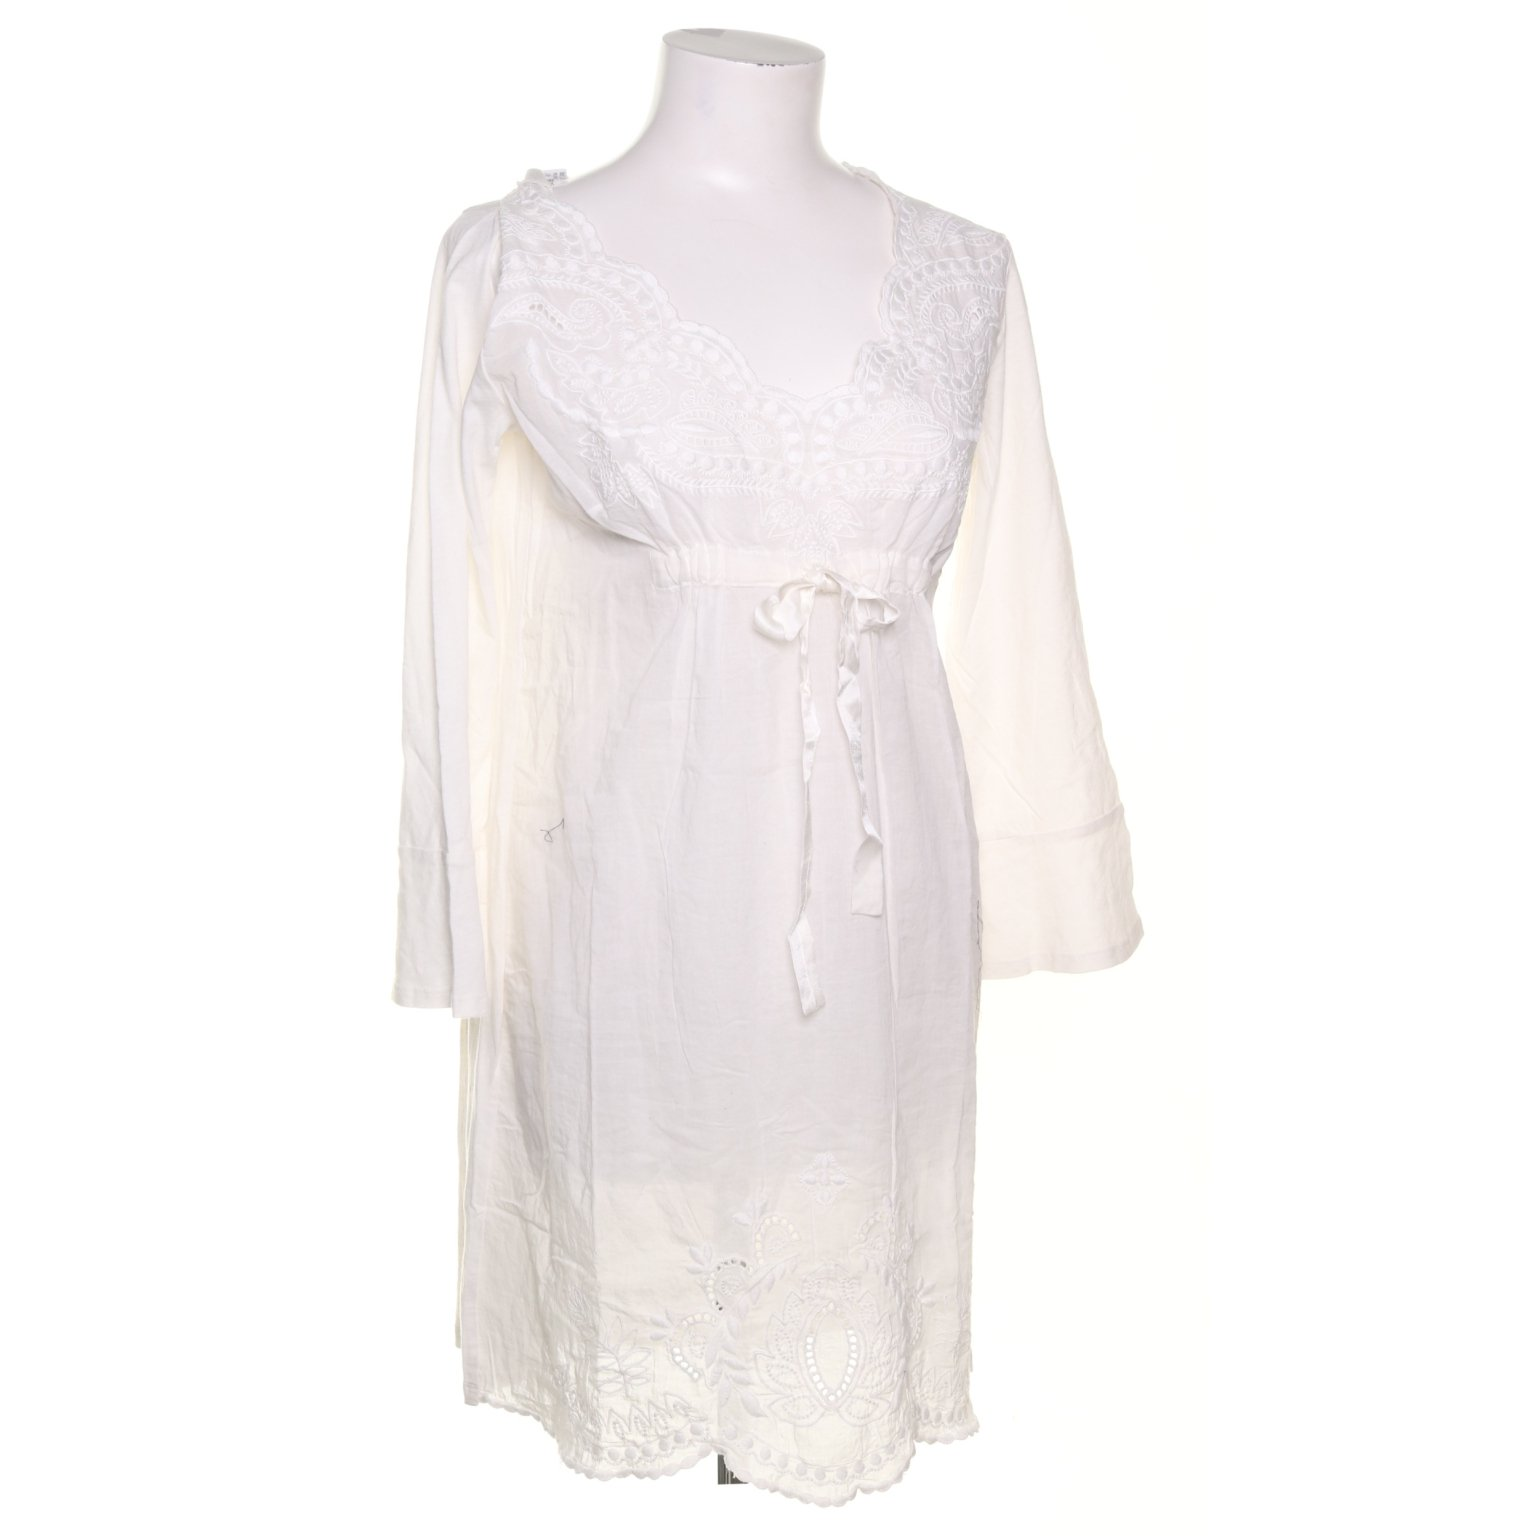 4d9a6aa39f62 Odd Molly, Klänning, Strl: M, Oh my dress.. (349192790) ᐈ Sellpy på ...